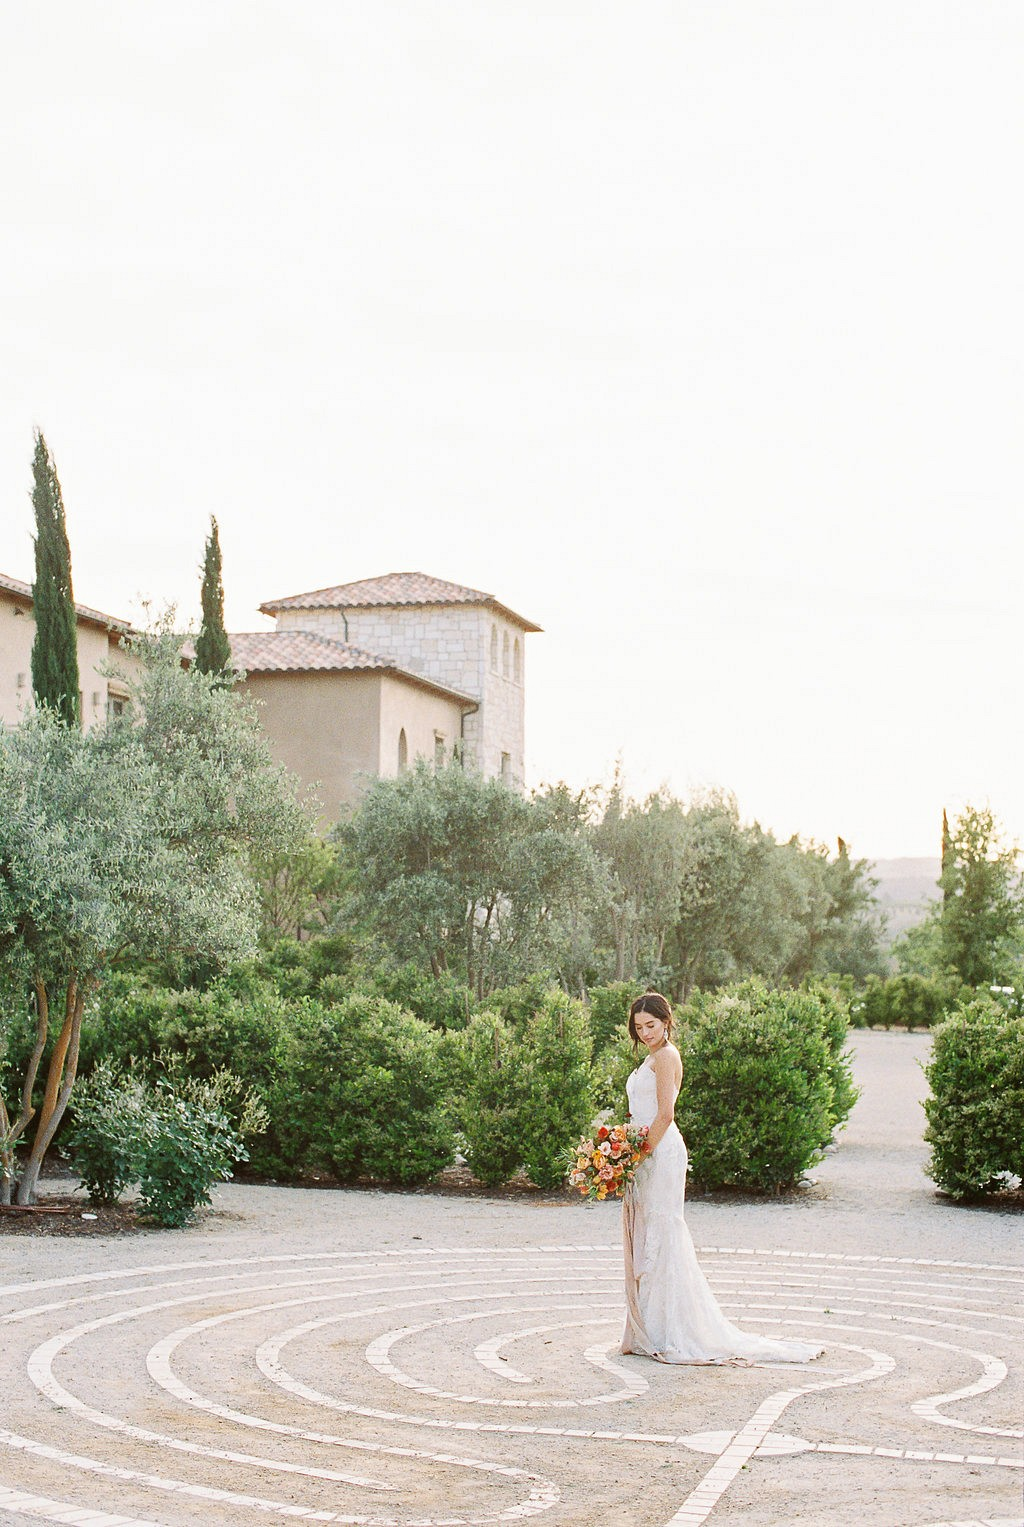 Bridal Boudoir and 'Morning of' Portraits at a Vineyard Resort